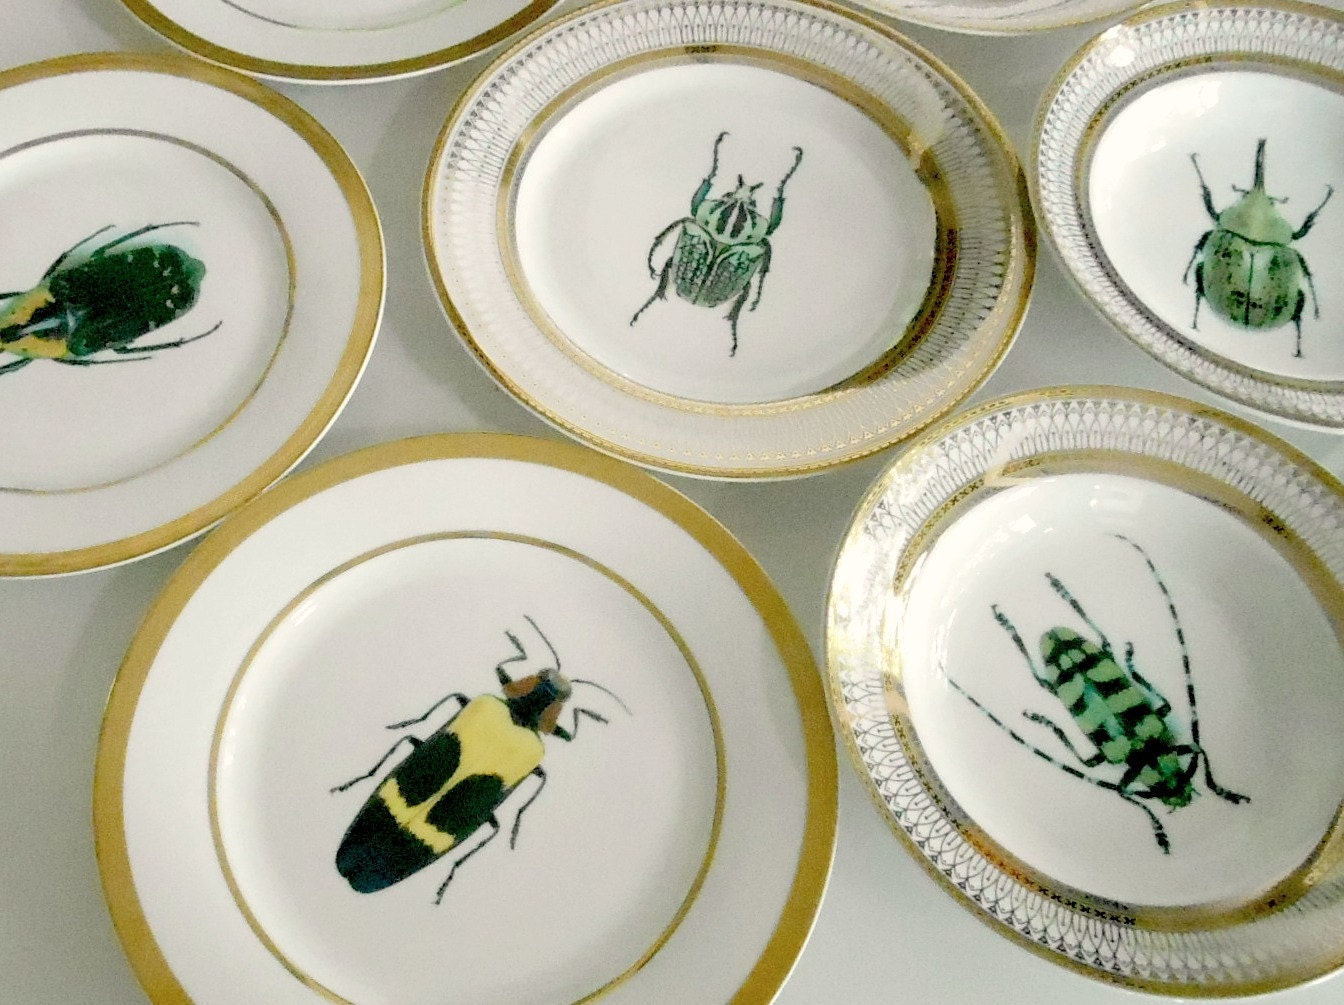 custom order for heather  one green beetle salad plate -  funky dishes custom plates custom dinnerware custom porcelaincustom tableware customized tablewaresilver dinnerware silver dishessilver plates